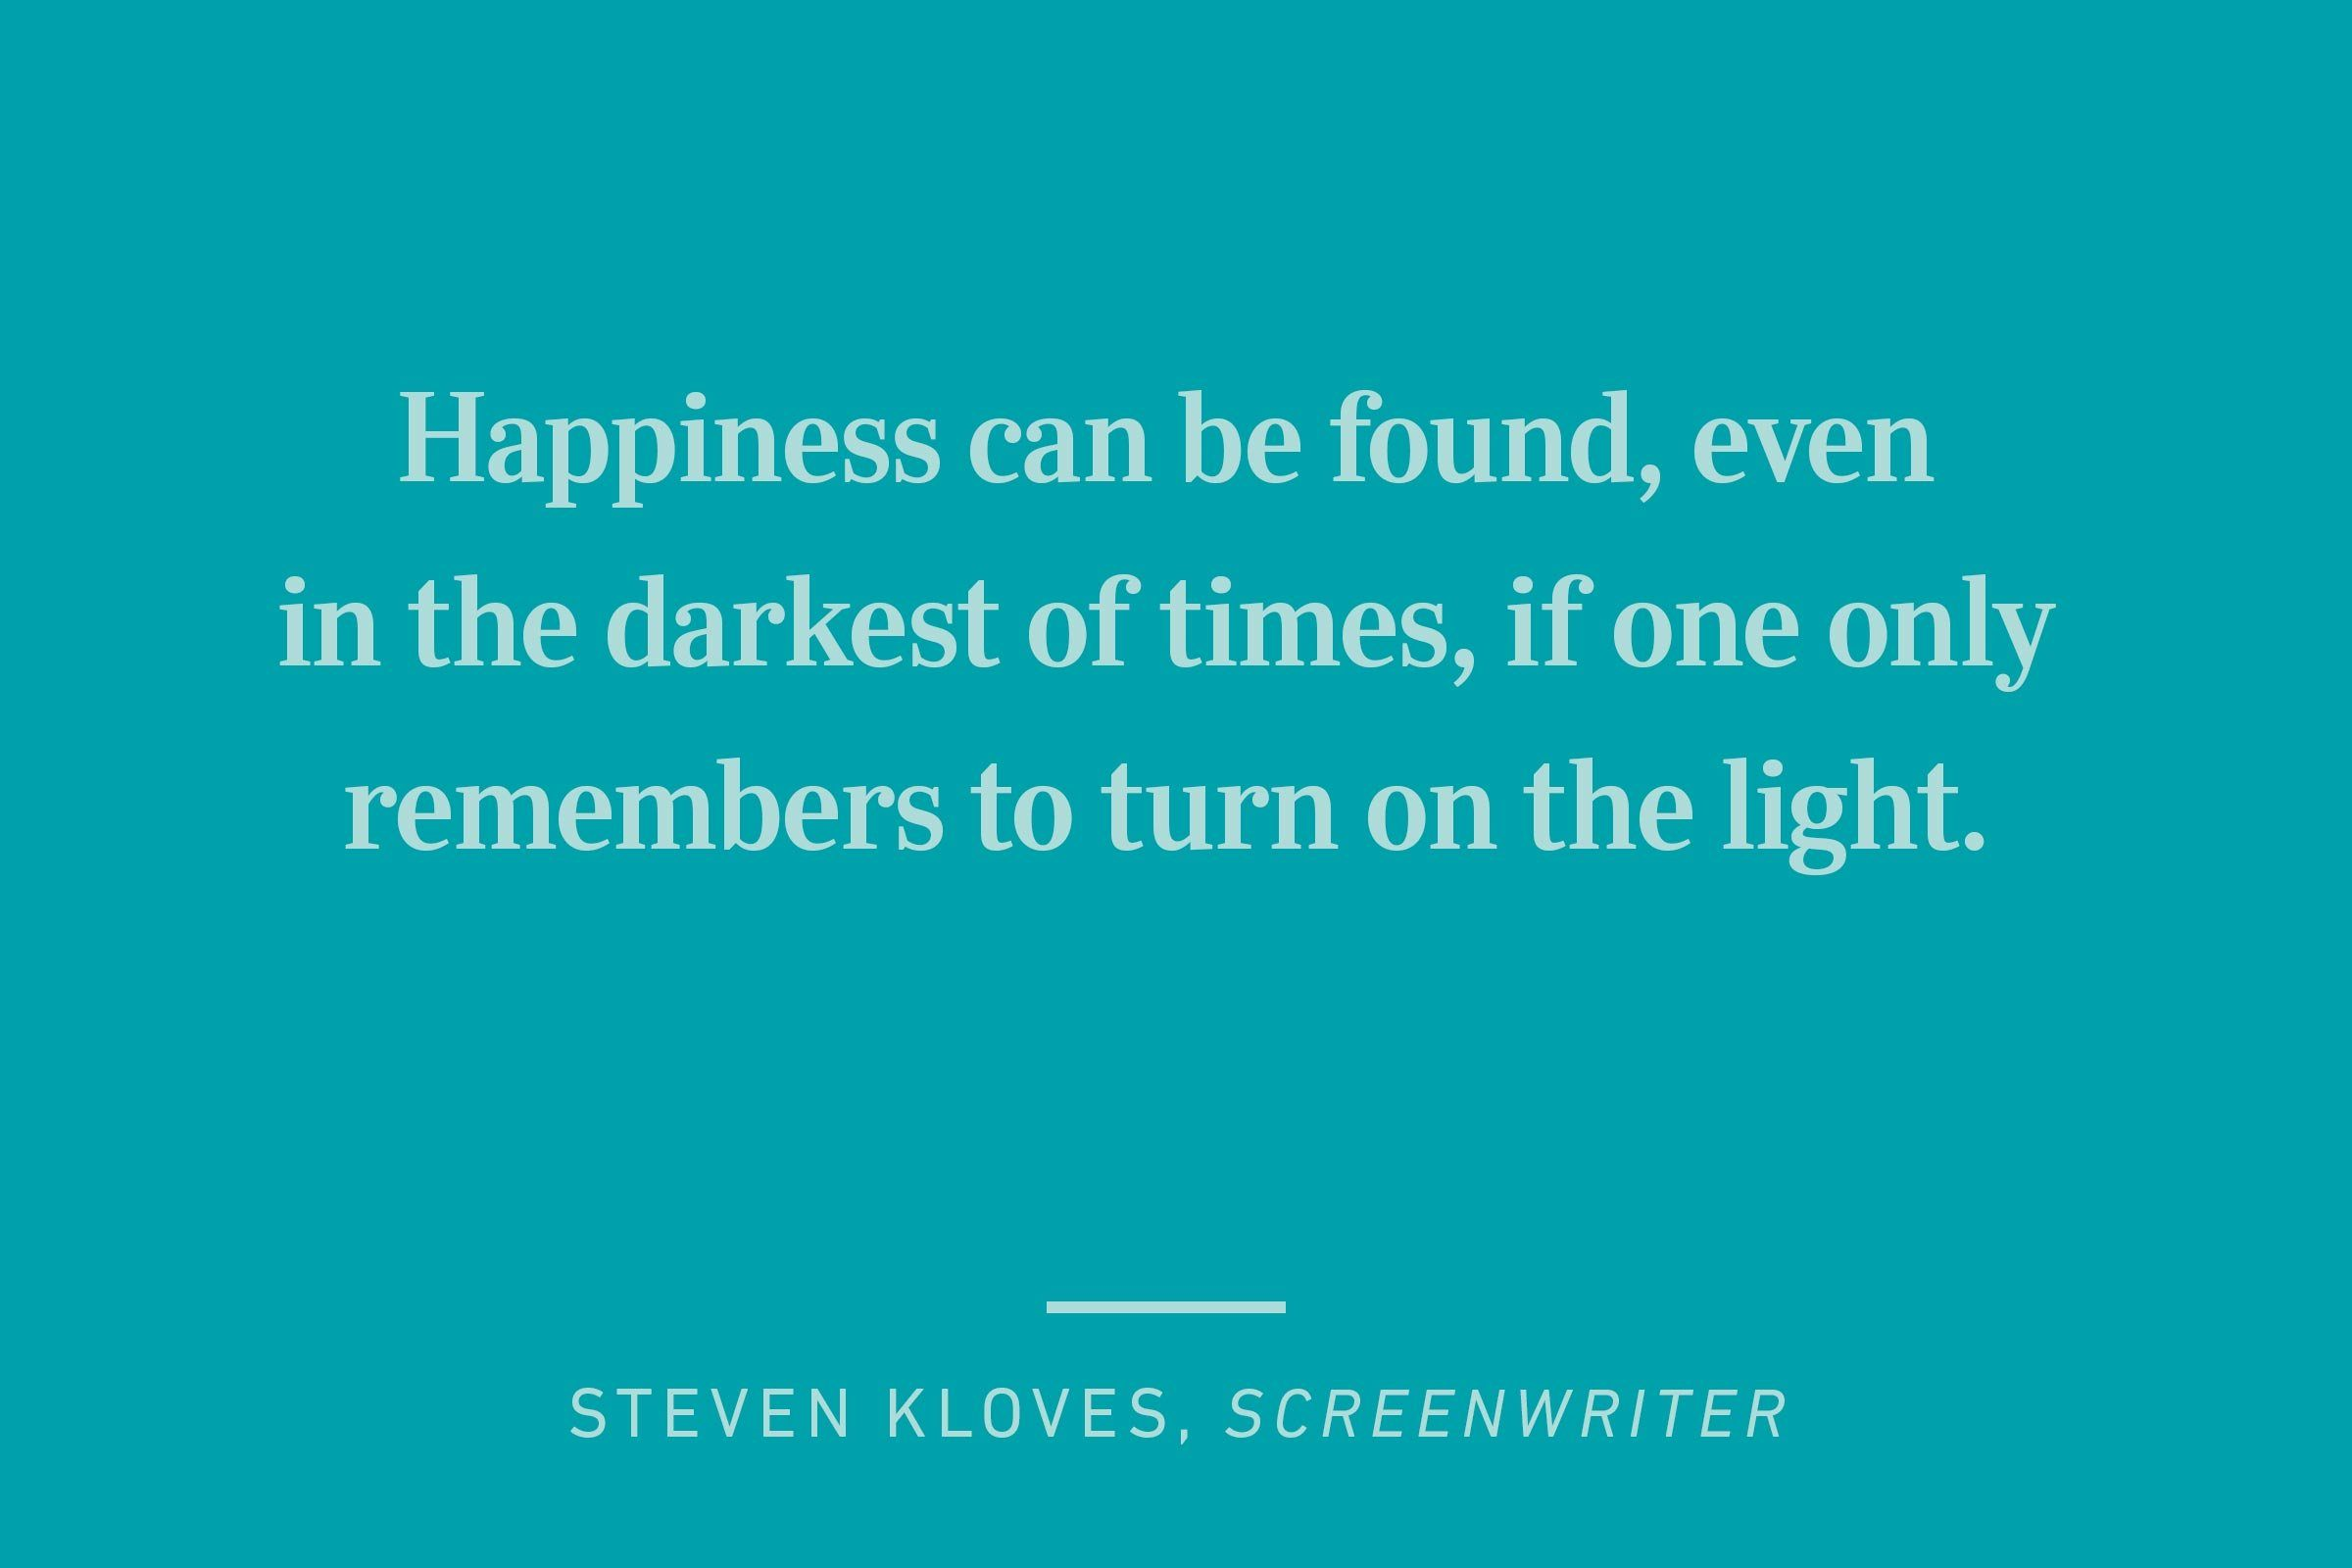 steven kloves happiness quote